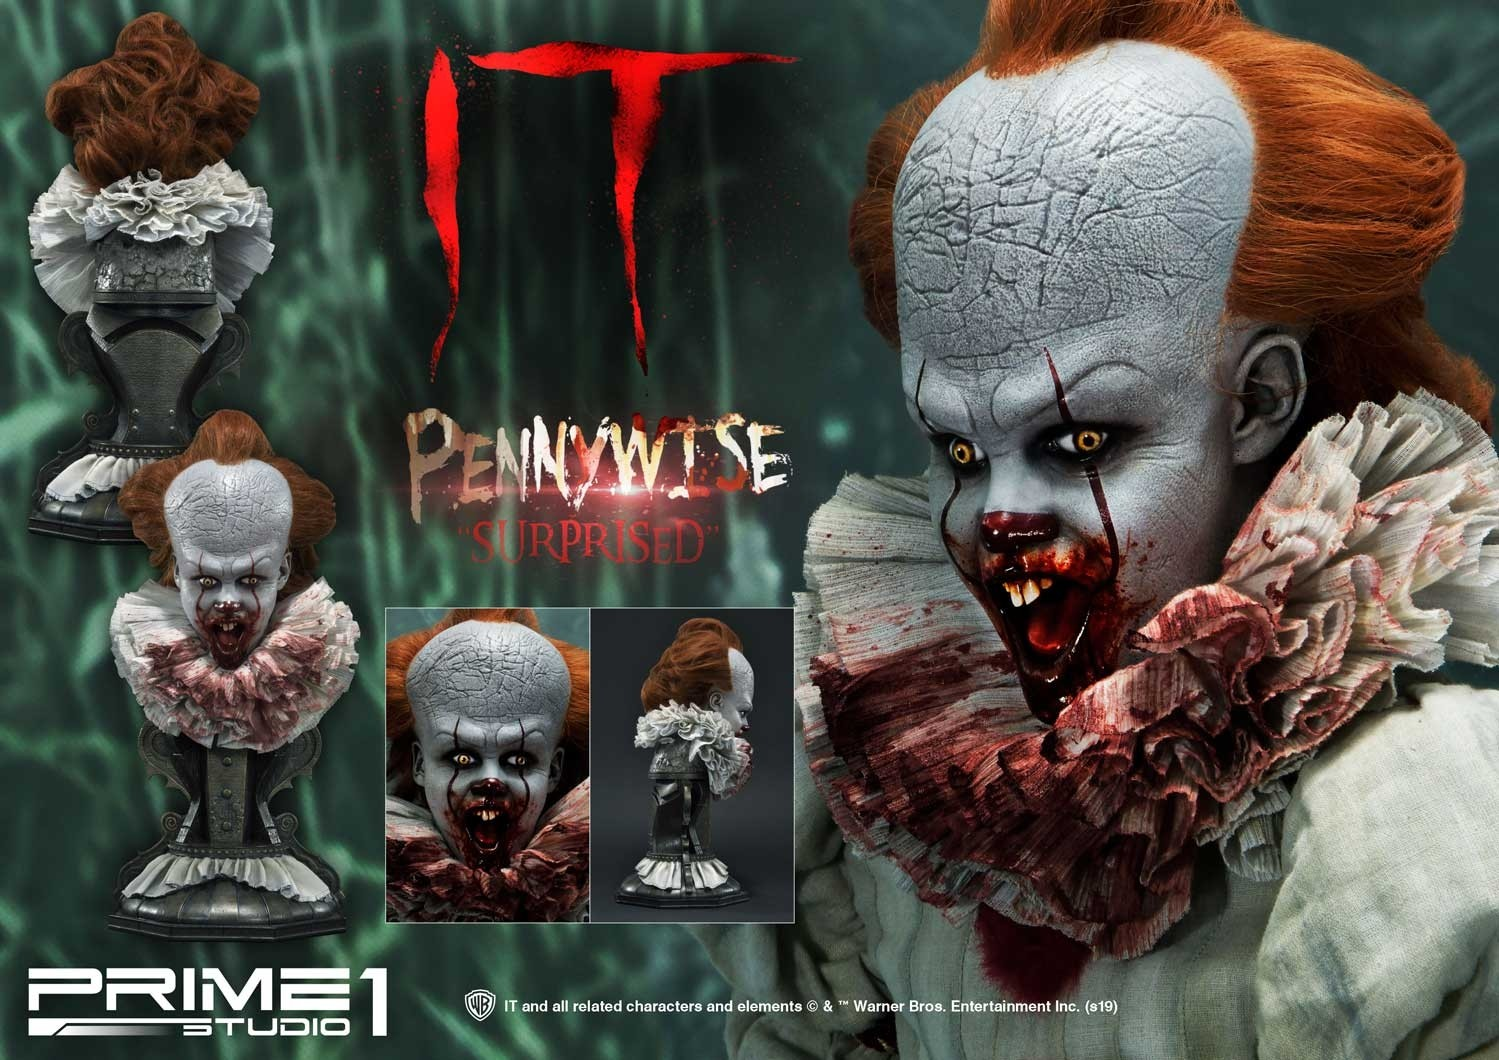 The Three Terrifying Faces of Pennywise: Prime 1 Studio